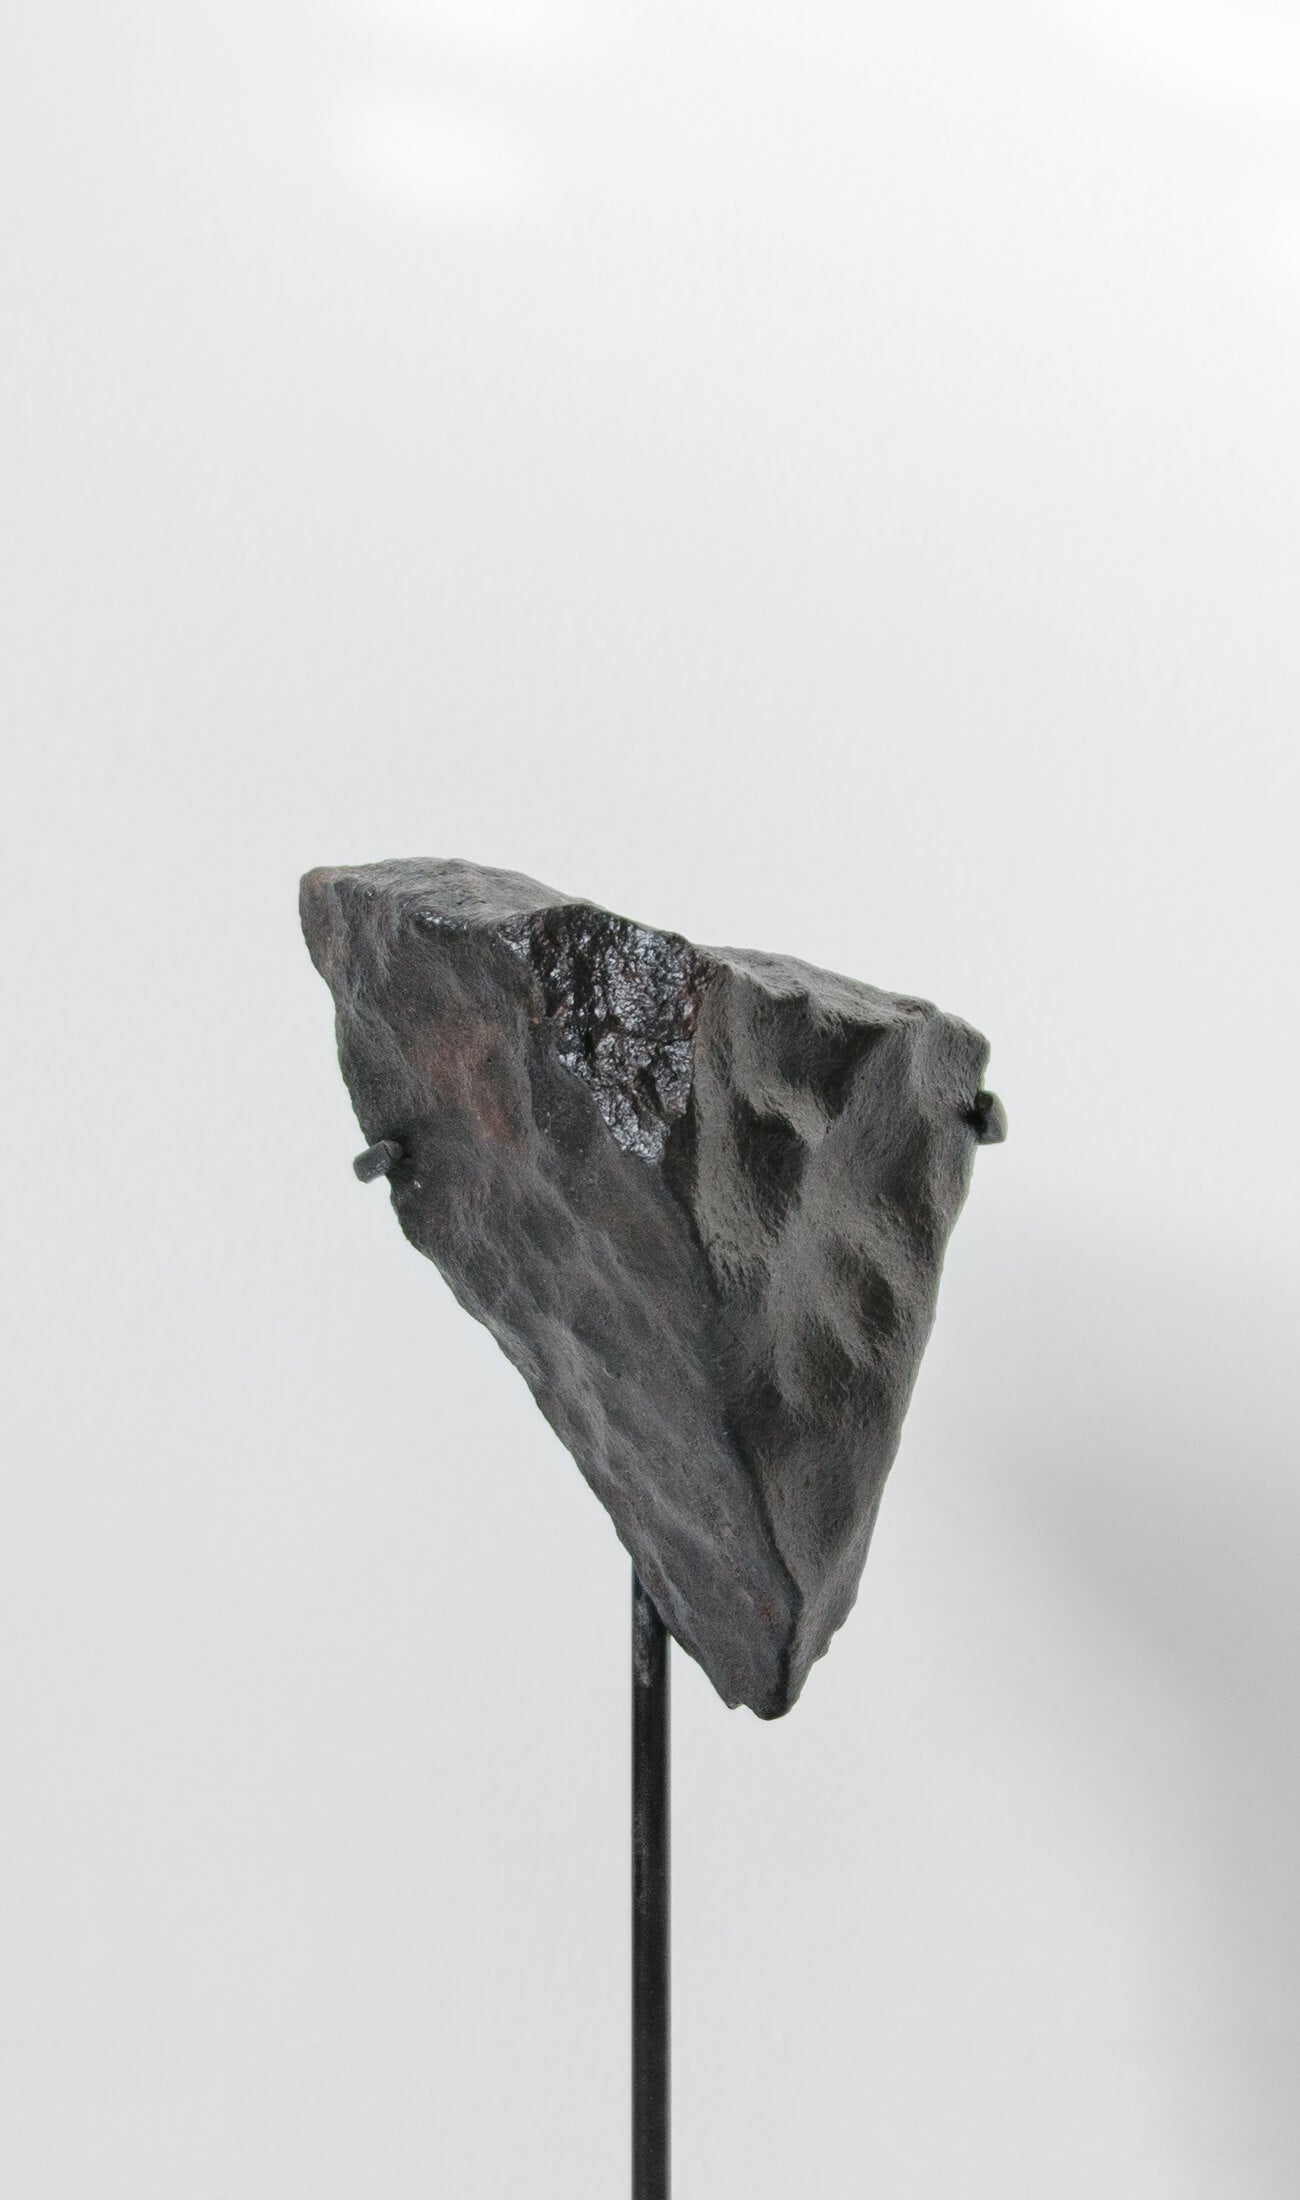 Shop this meteorite on a bronze plinth stand